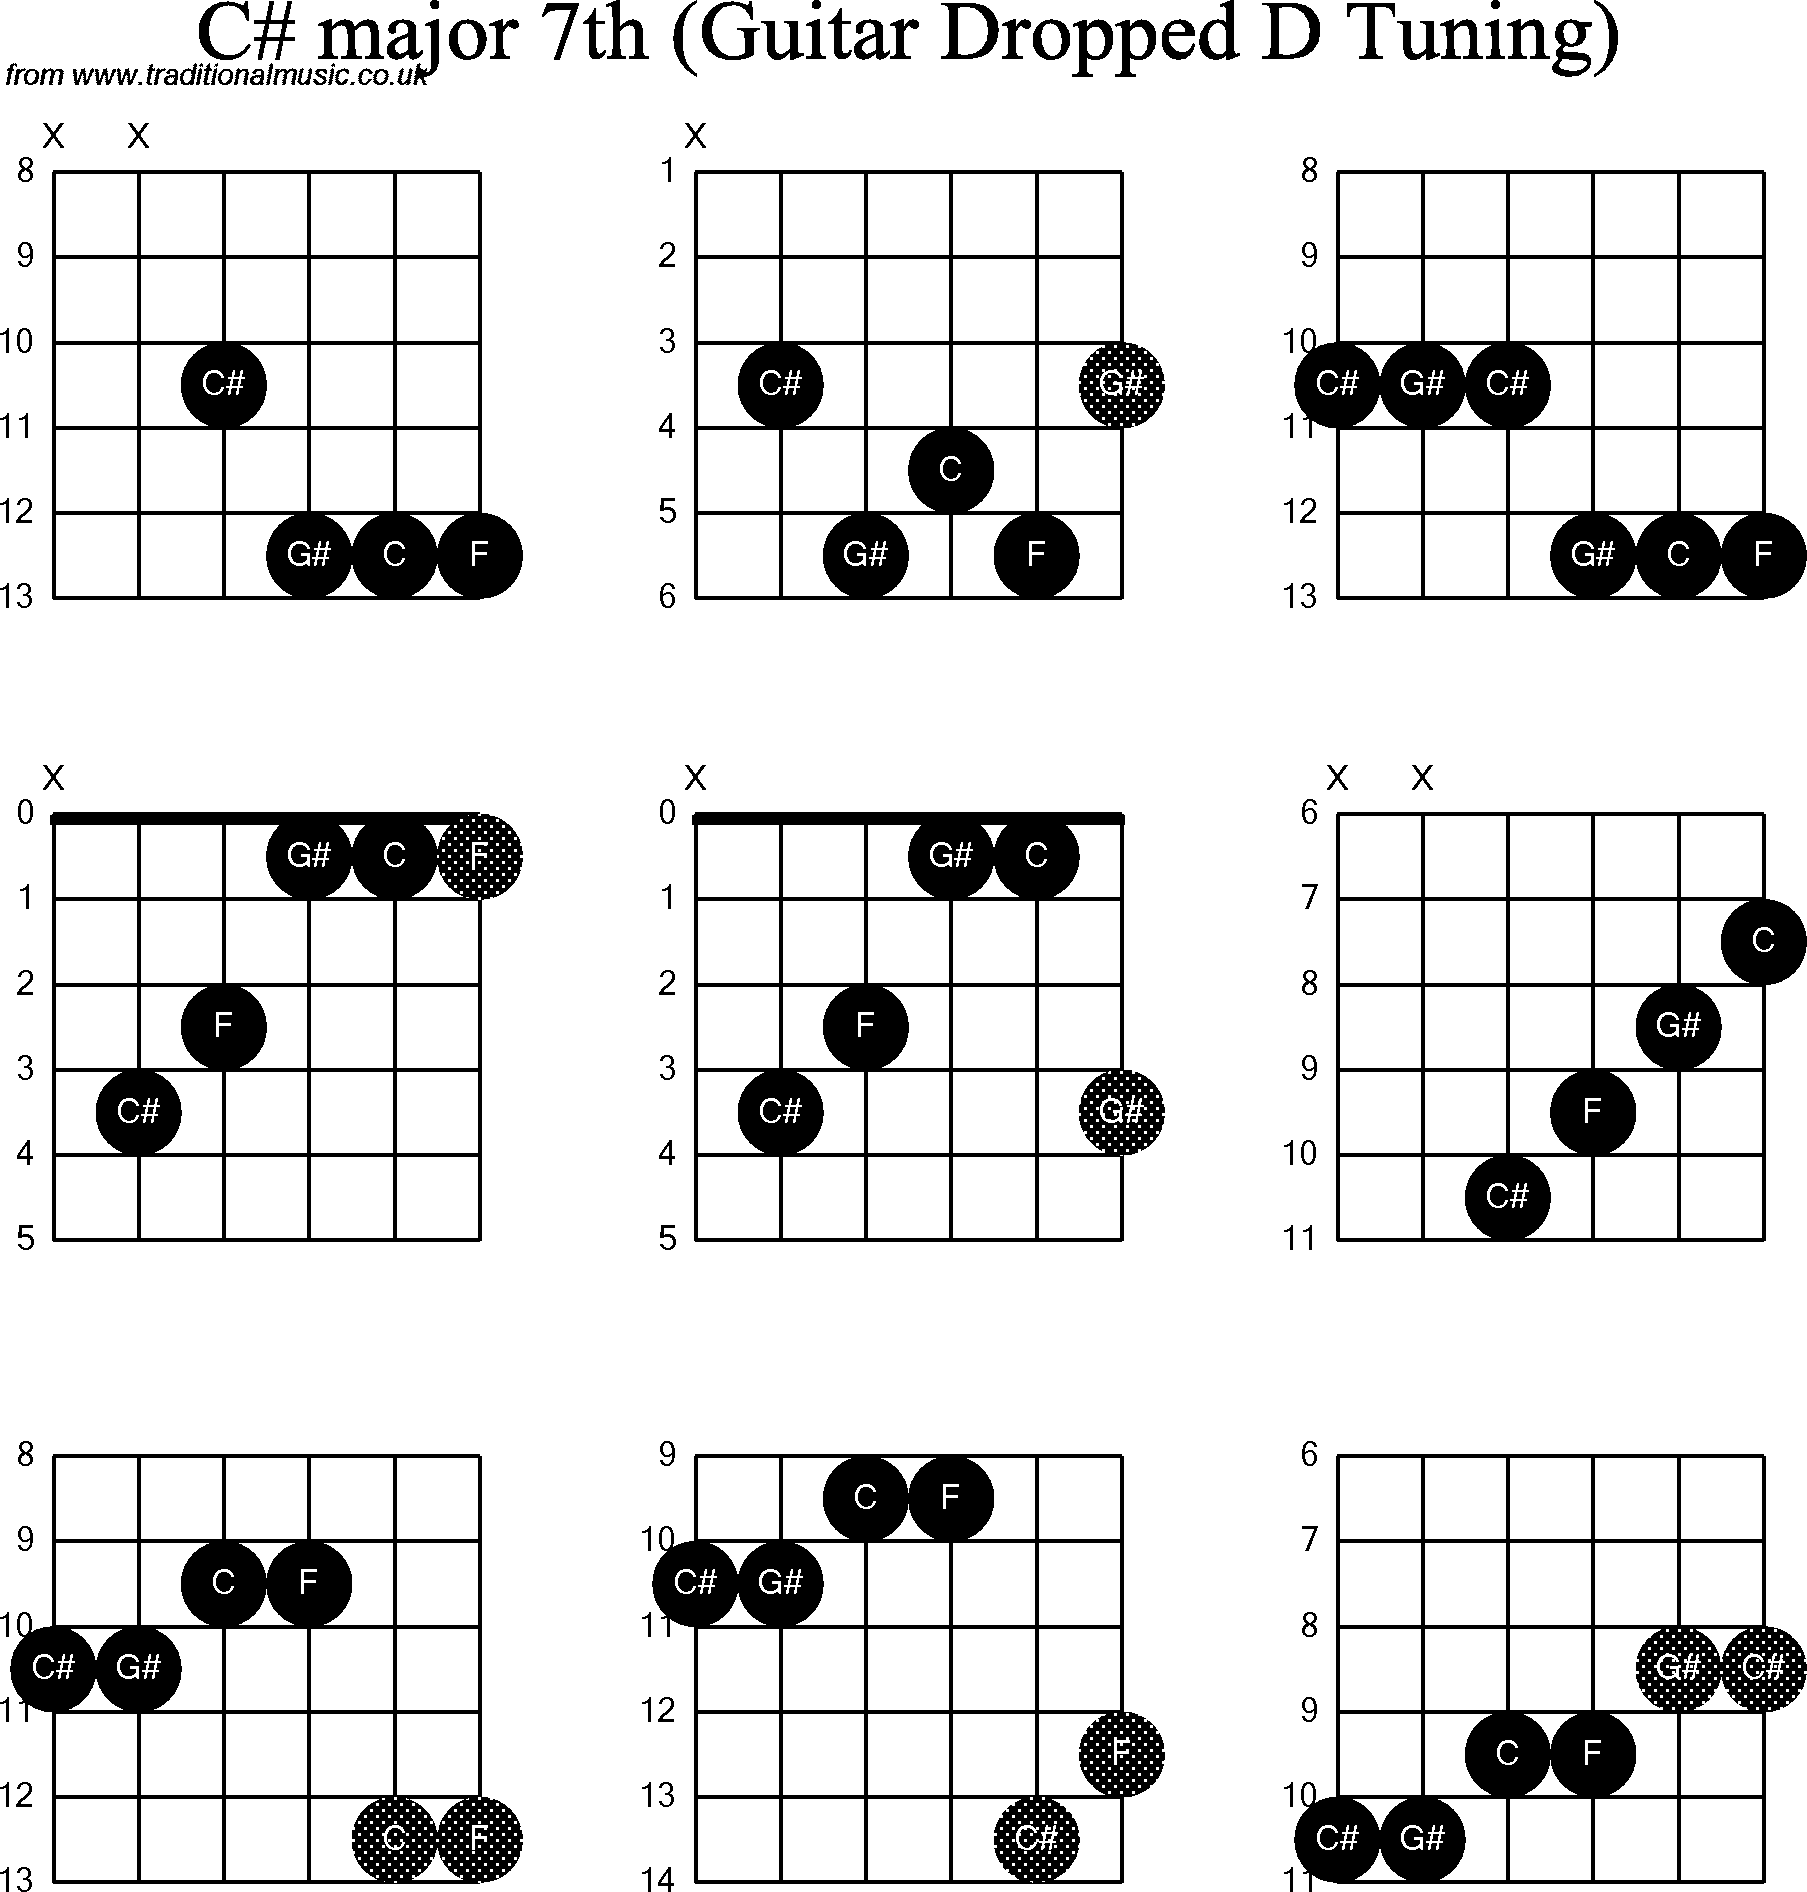 Chord Diagrams For Dropped D Guitardadgbe C Sharp Major7th